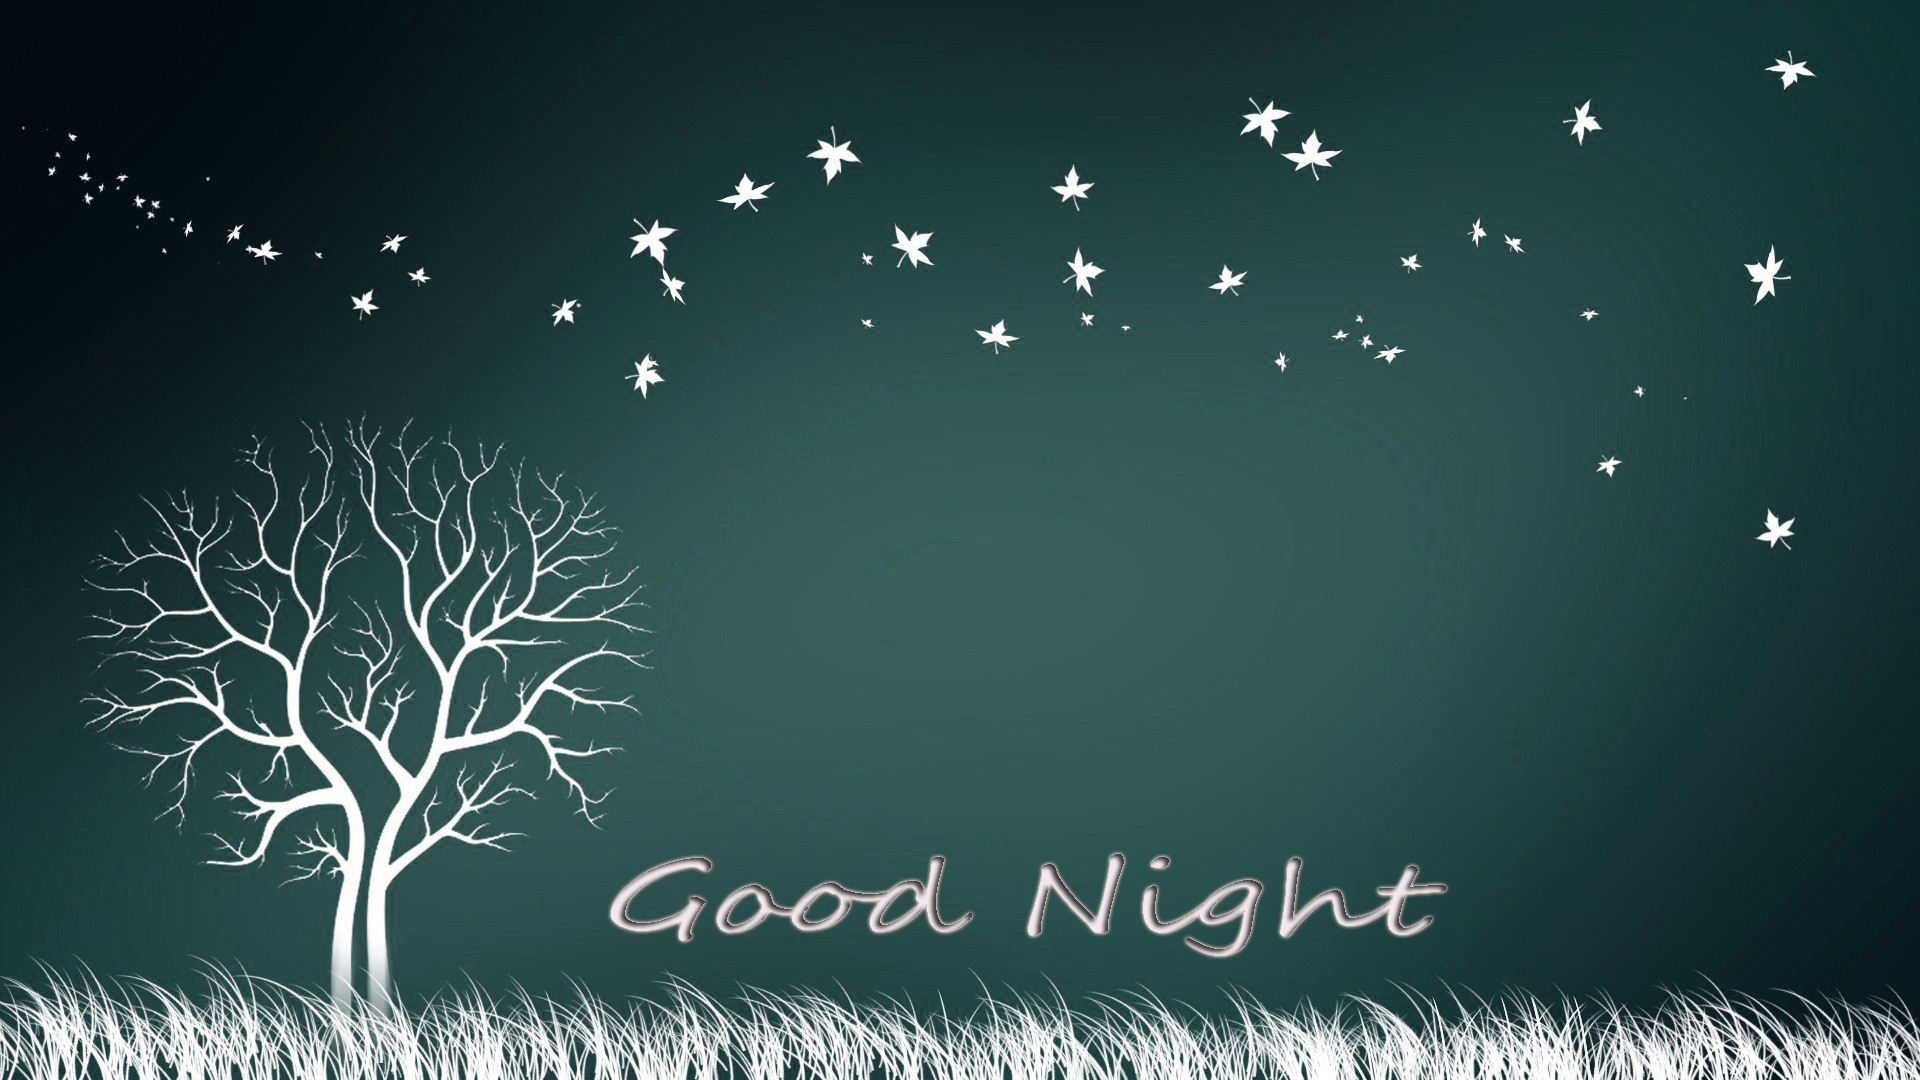 Good Night Wallpapers, Pictures, Images: http://www.hdwallpaper.nu/good-night-wallpapers/